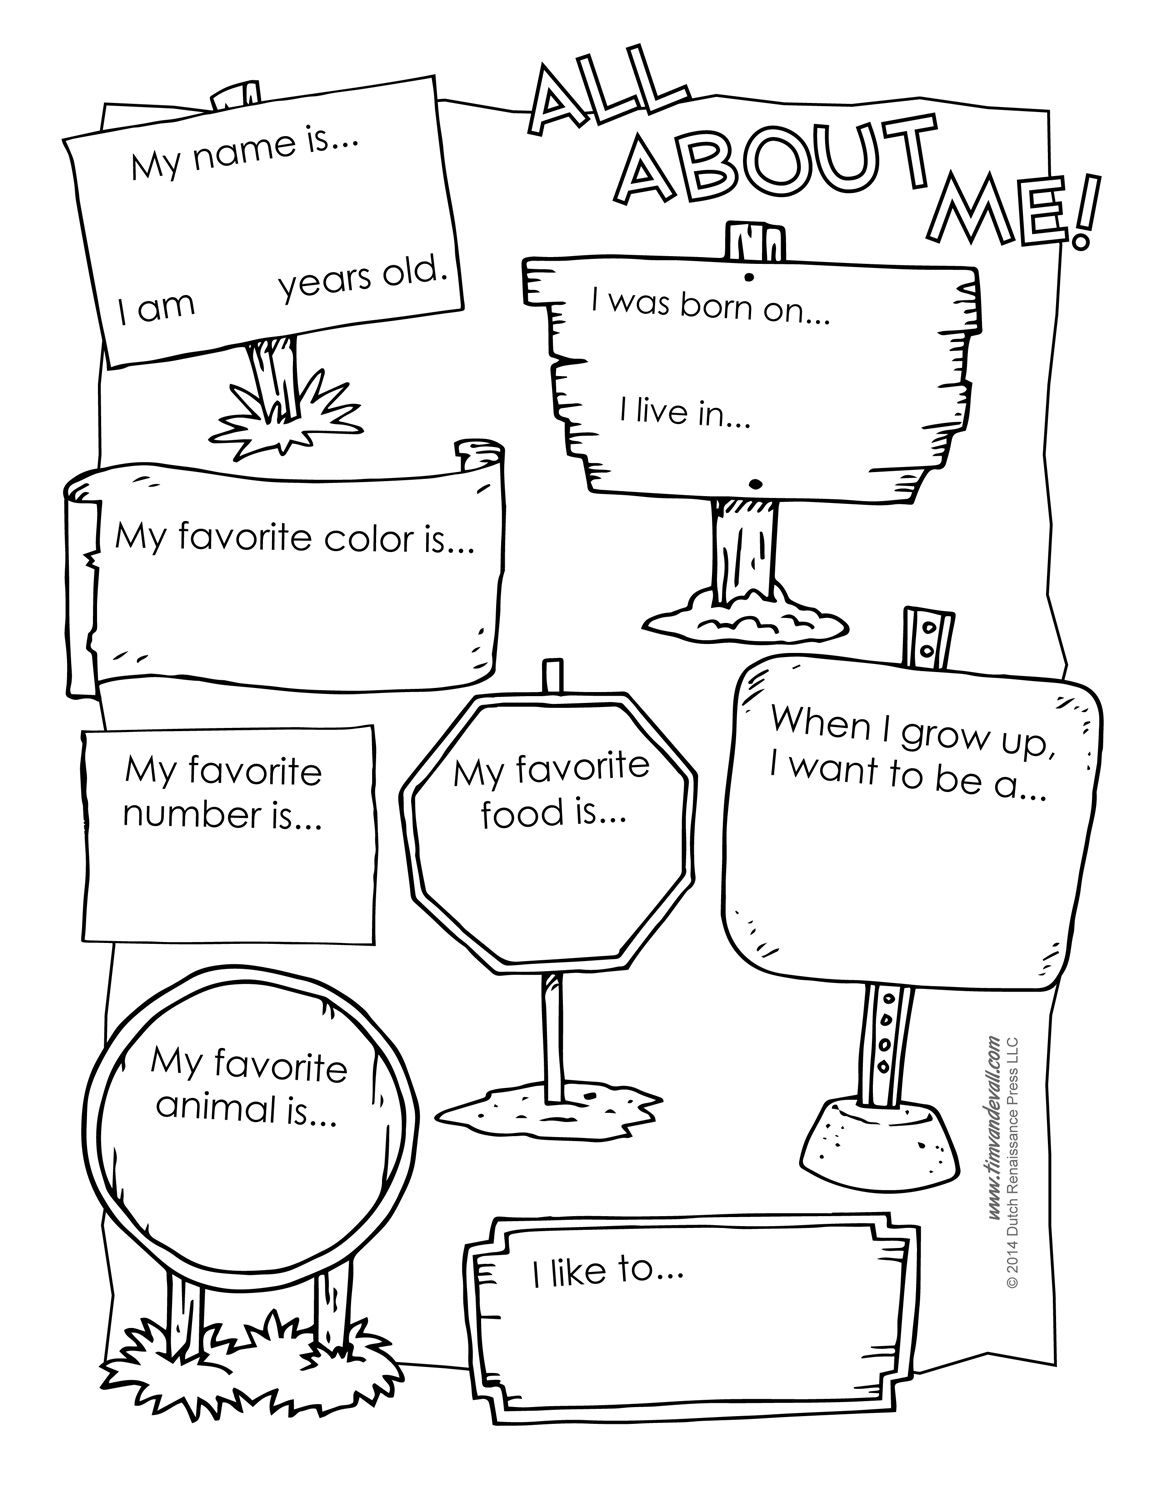 all about me preschool template | 6 Best Images of All ...